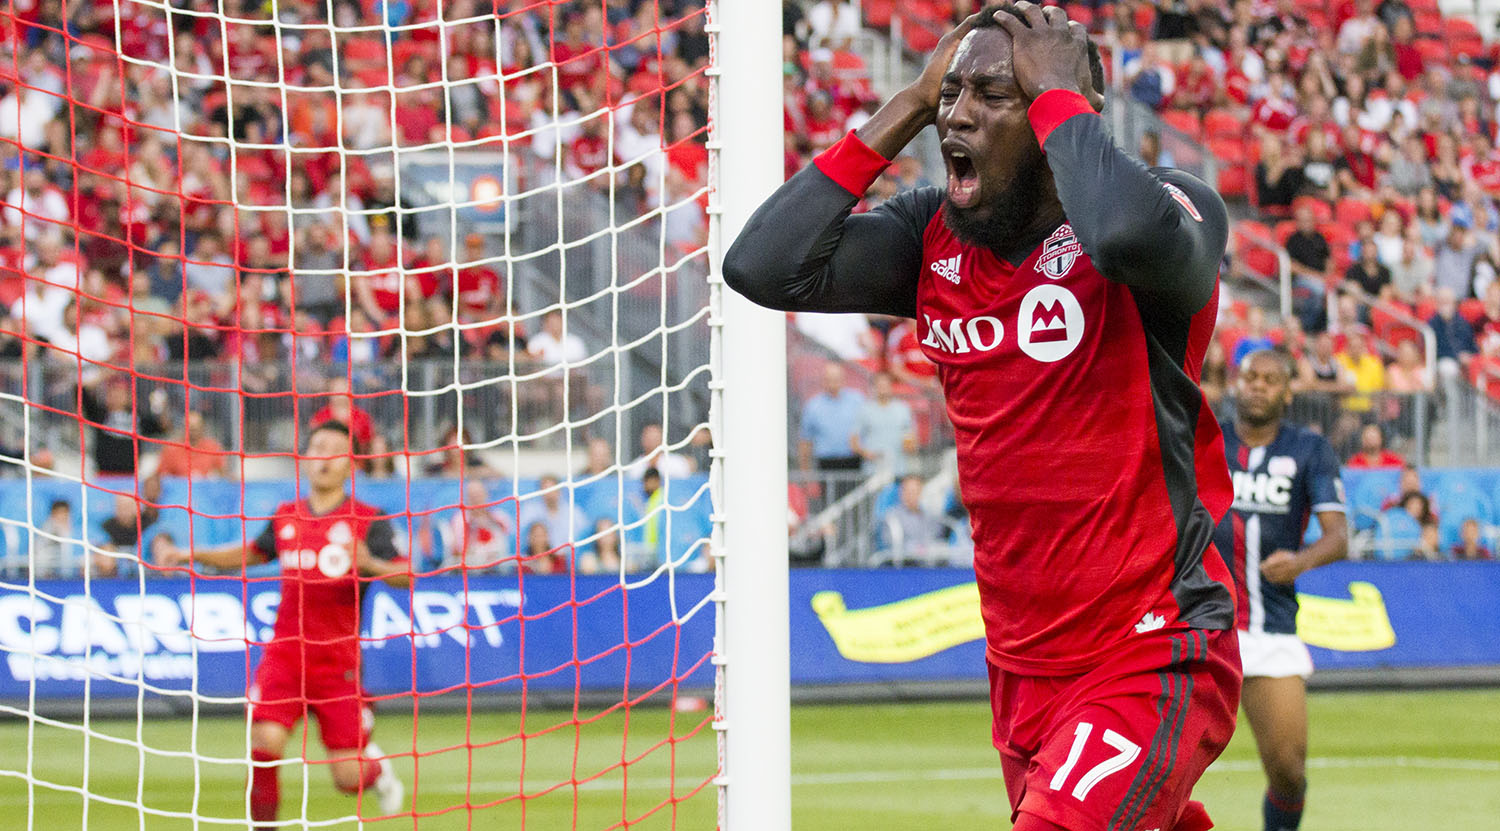 Jozy Altidore screams in frustration over a missed oppourtunity for a goal during a 2017 Major League Soccer match against the New England Revolution in 2017. Image by Dennis Marciniak of denMAR